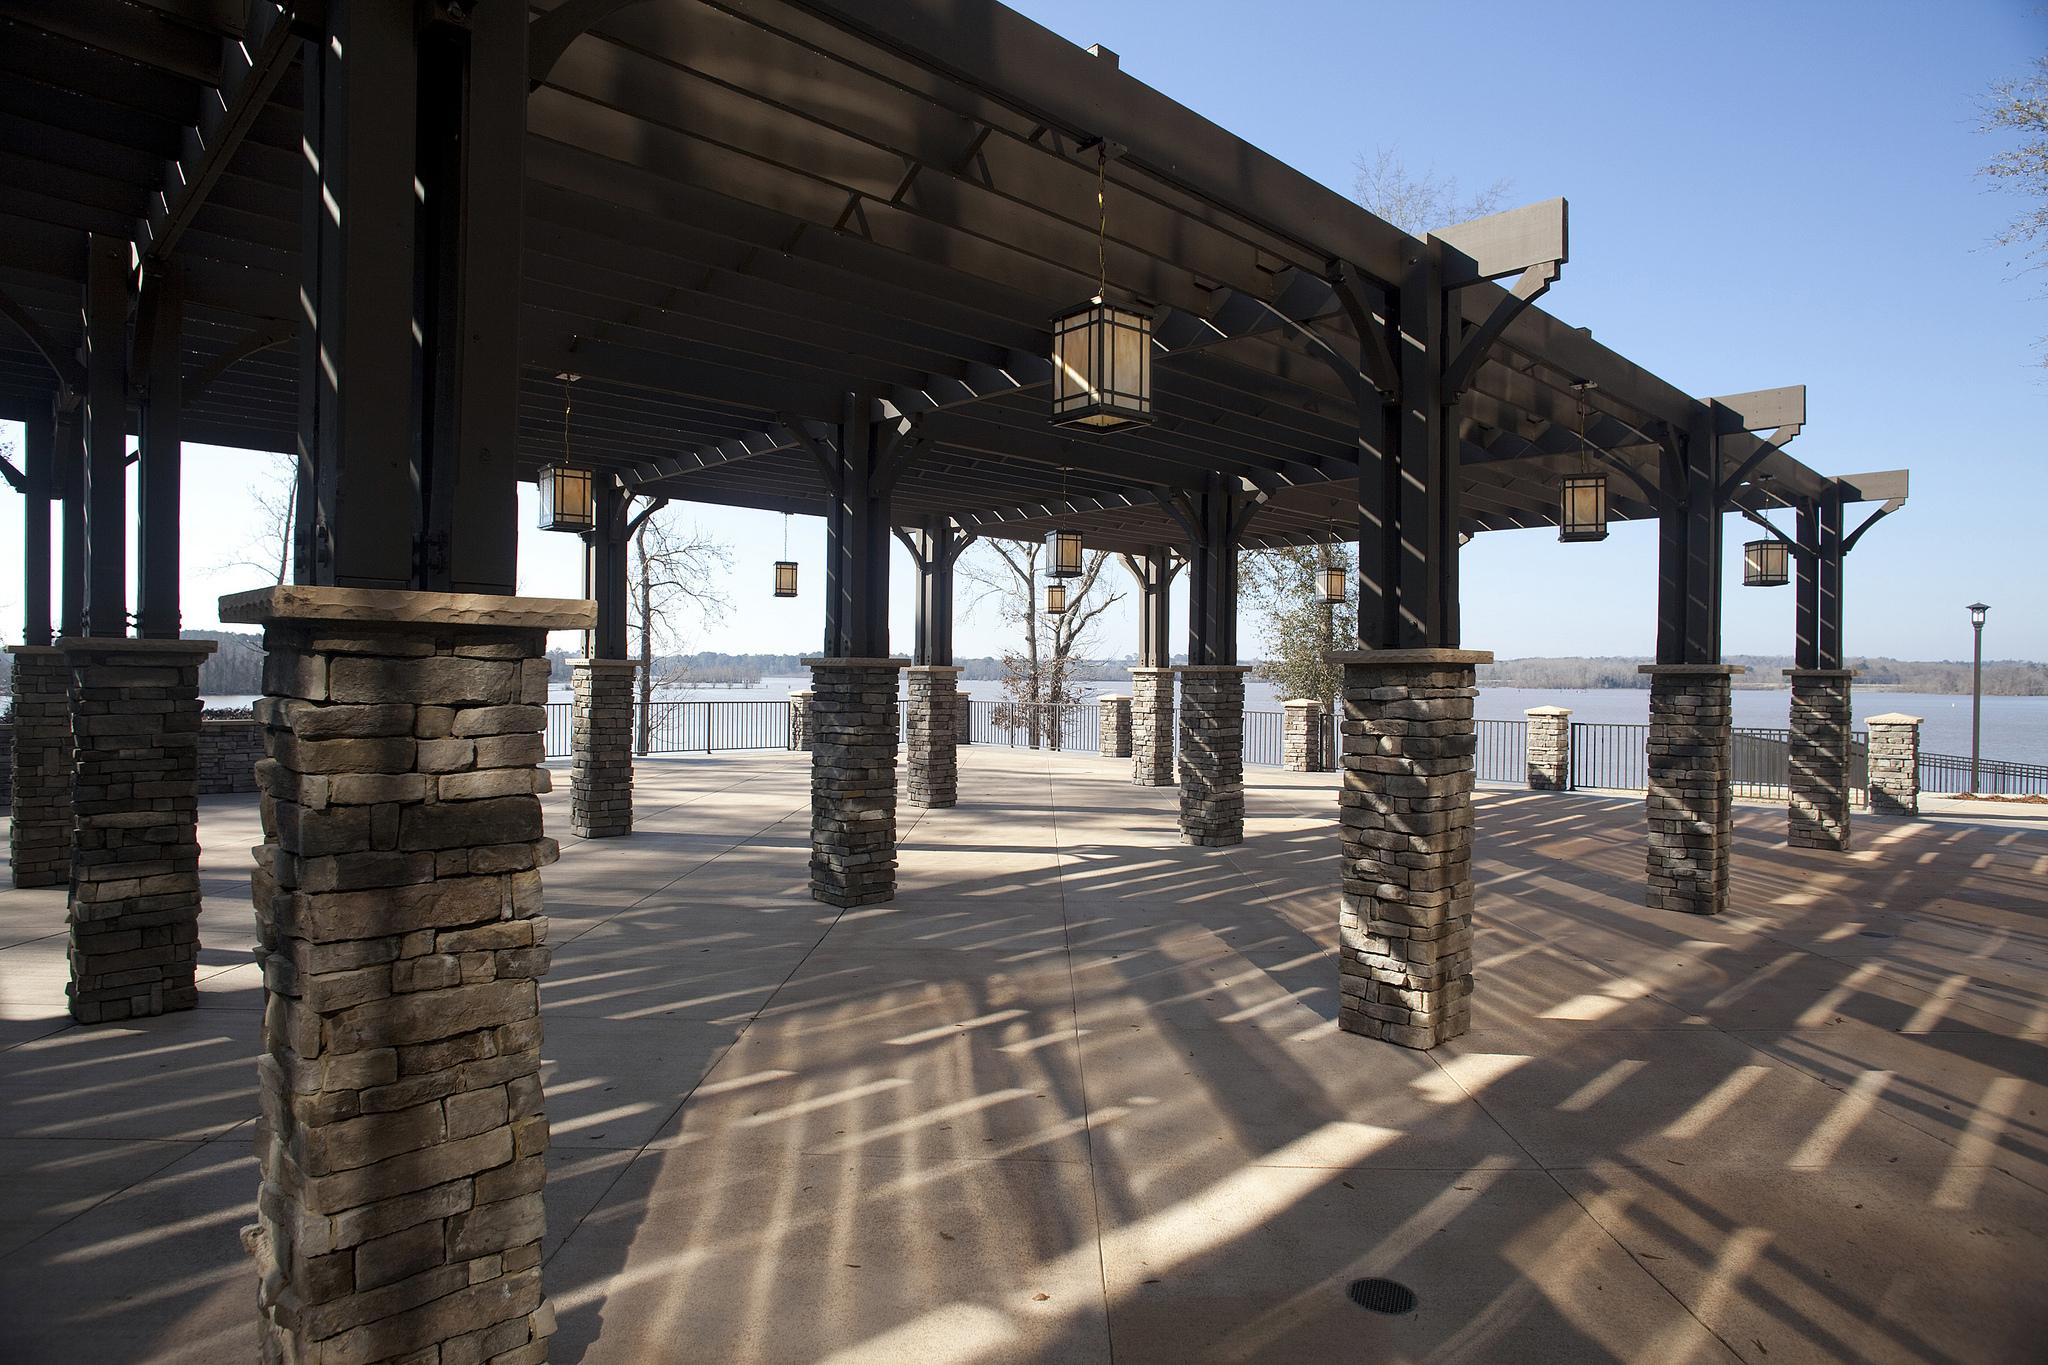 Lakepoint State Park Patio